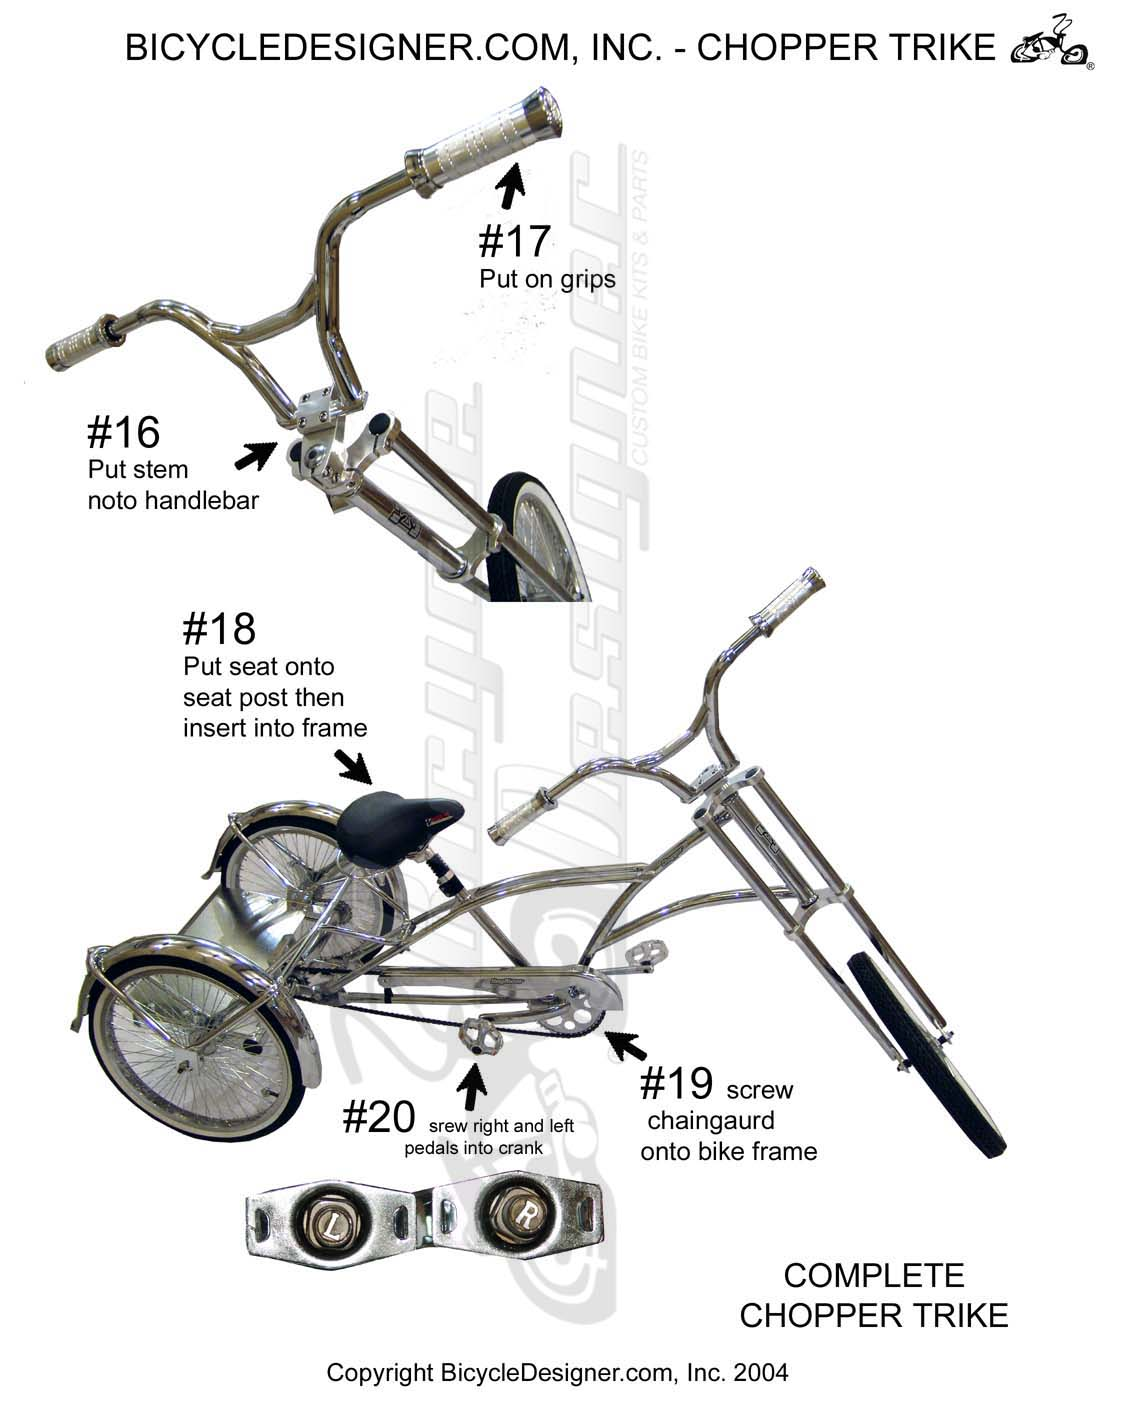 49cc 2 Stroke Pocket Bike Wiring Diagram also 80cc Engine Breakdown Diagram besides Download Free 49cc Pocket Bikes Manual together with 80cc Scooter Engine Diagram additionally Music Tattoo blogspot. on 49cc bicycle engine wiring diagram